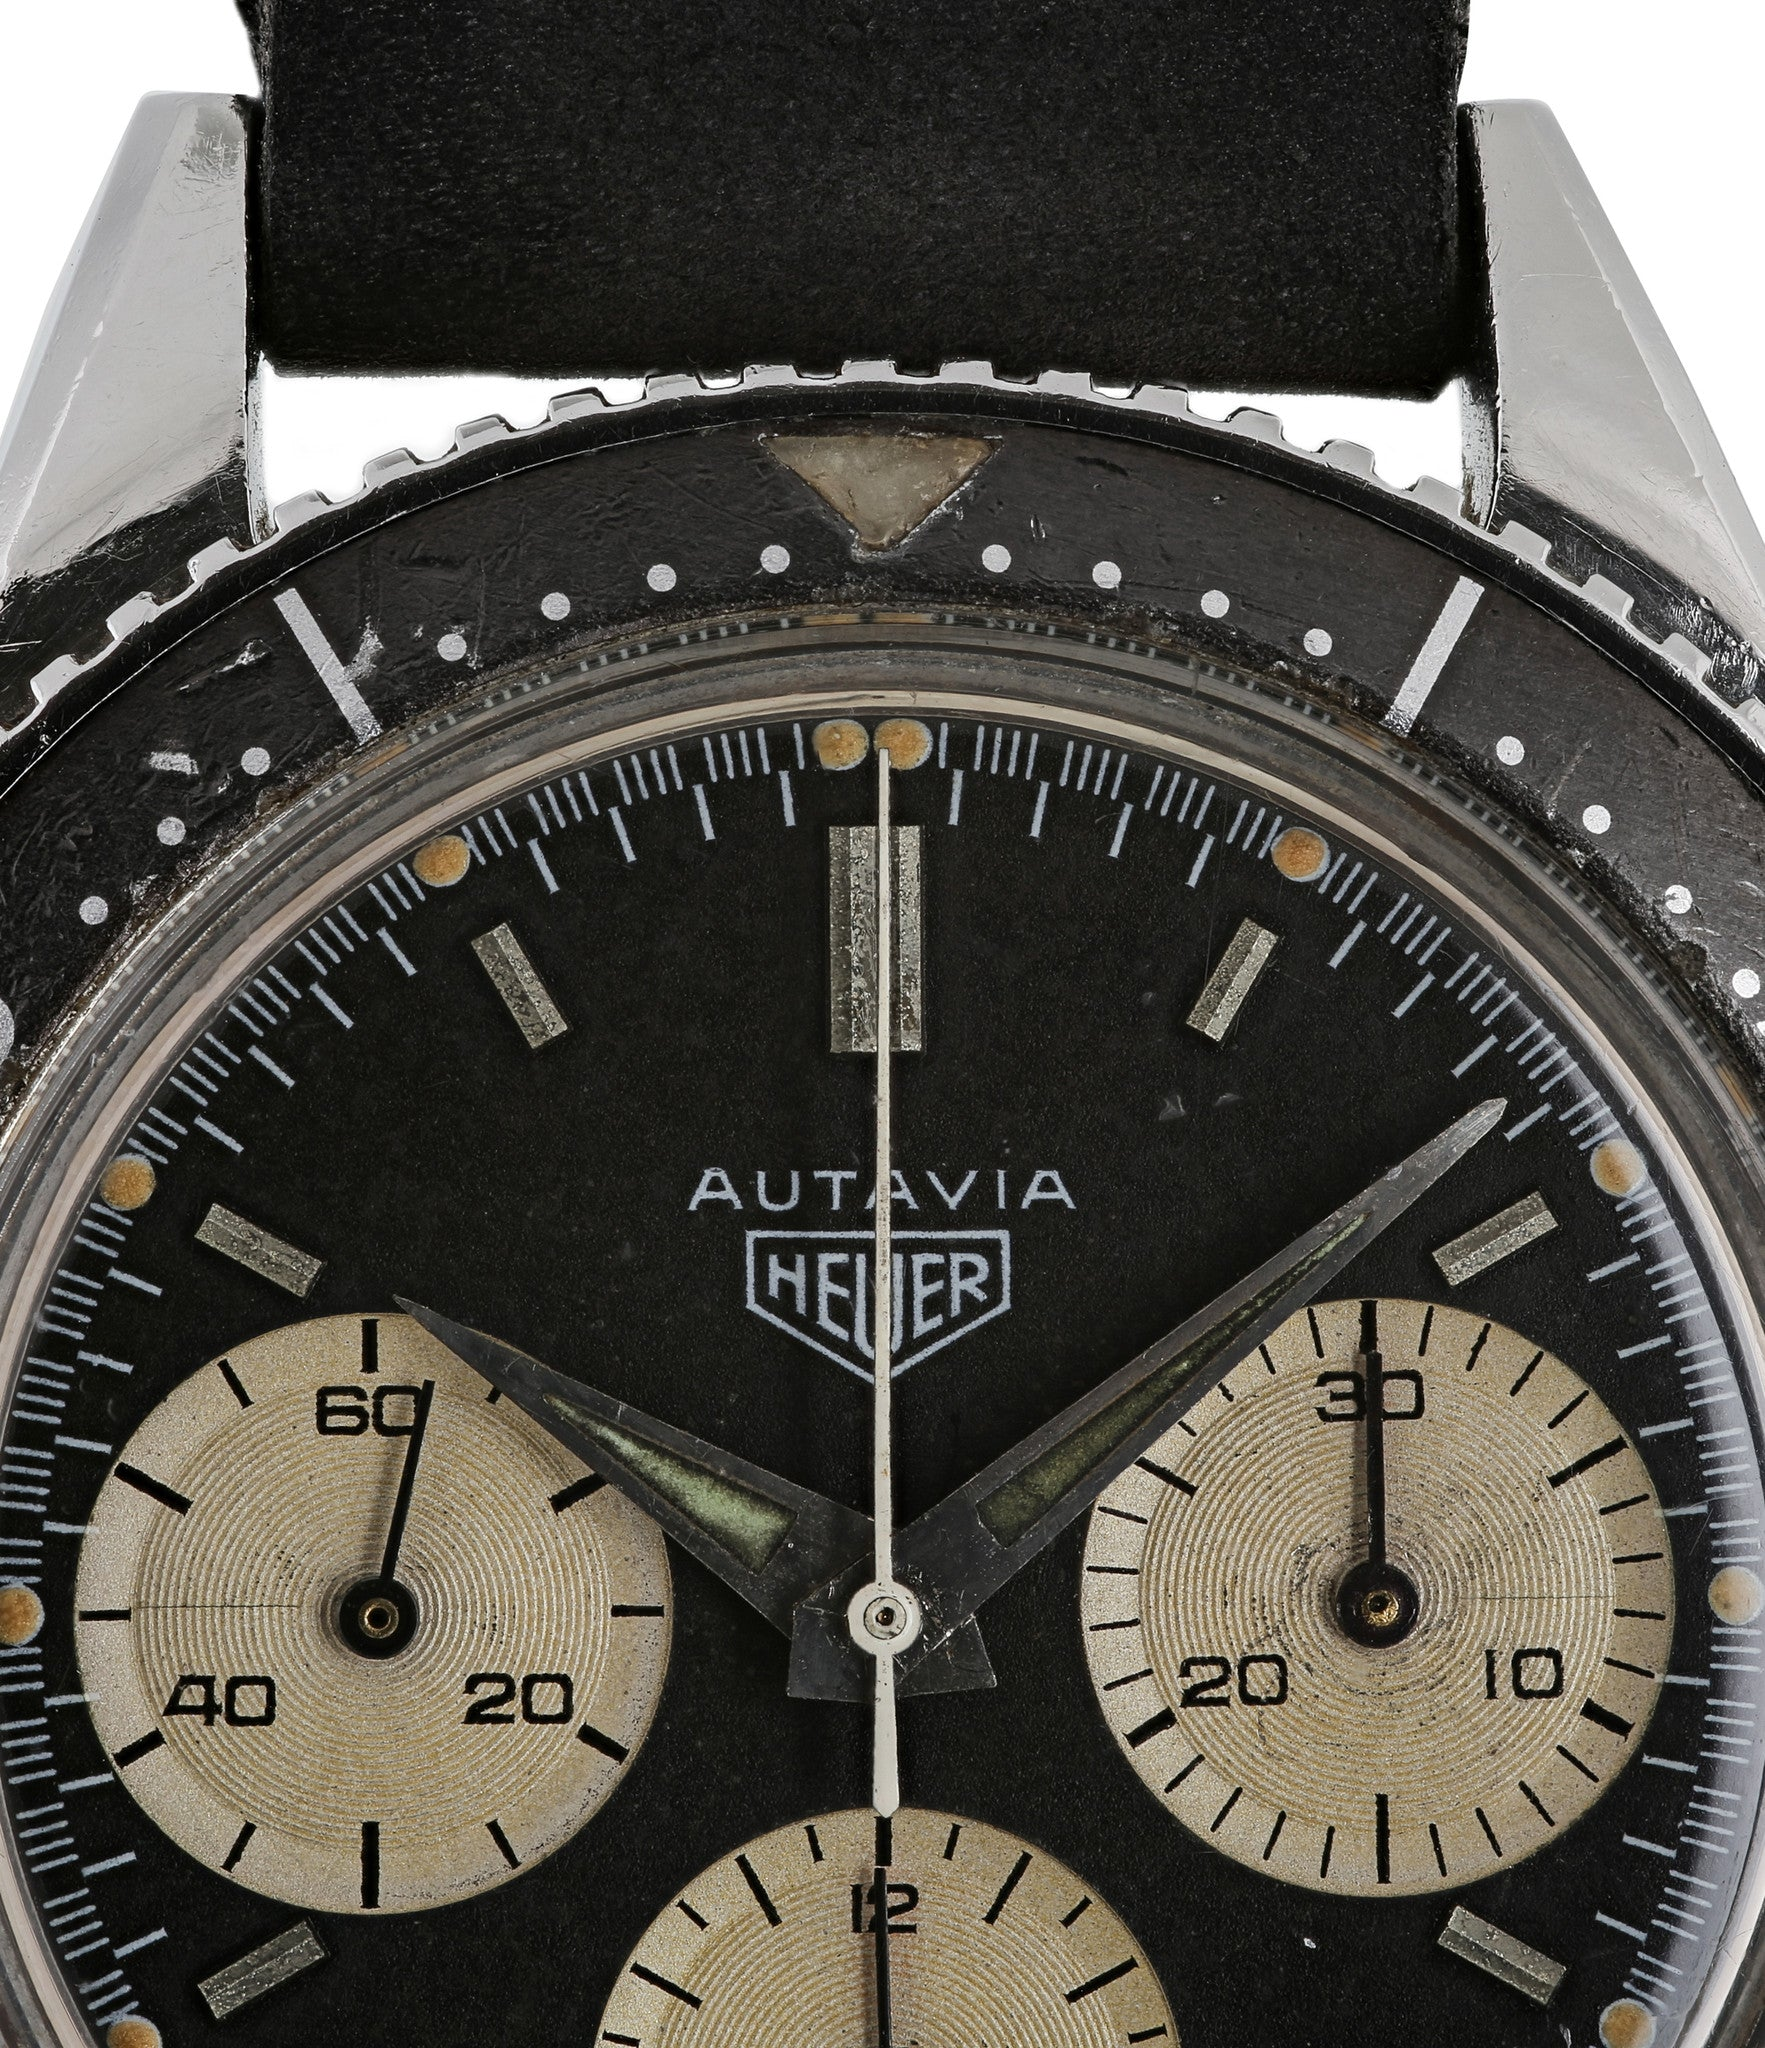 buy Heuer Autavia 2446 rare second execution vintage chronograph Valjoux 72 calibre watch with black dial